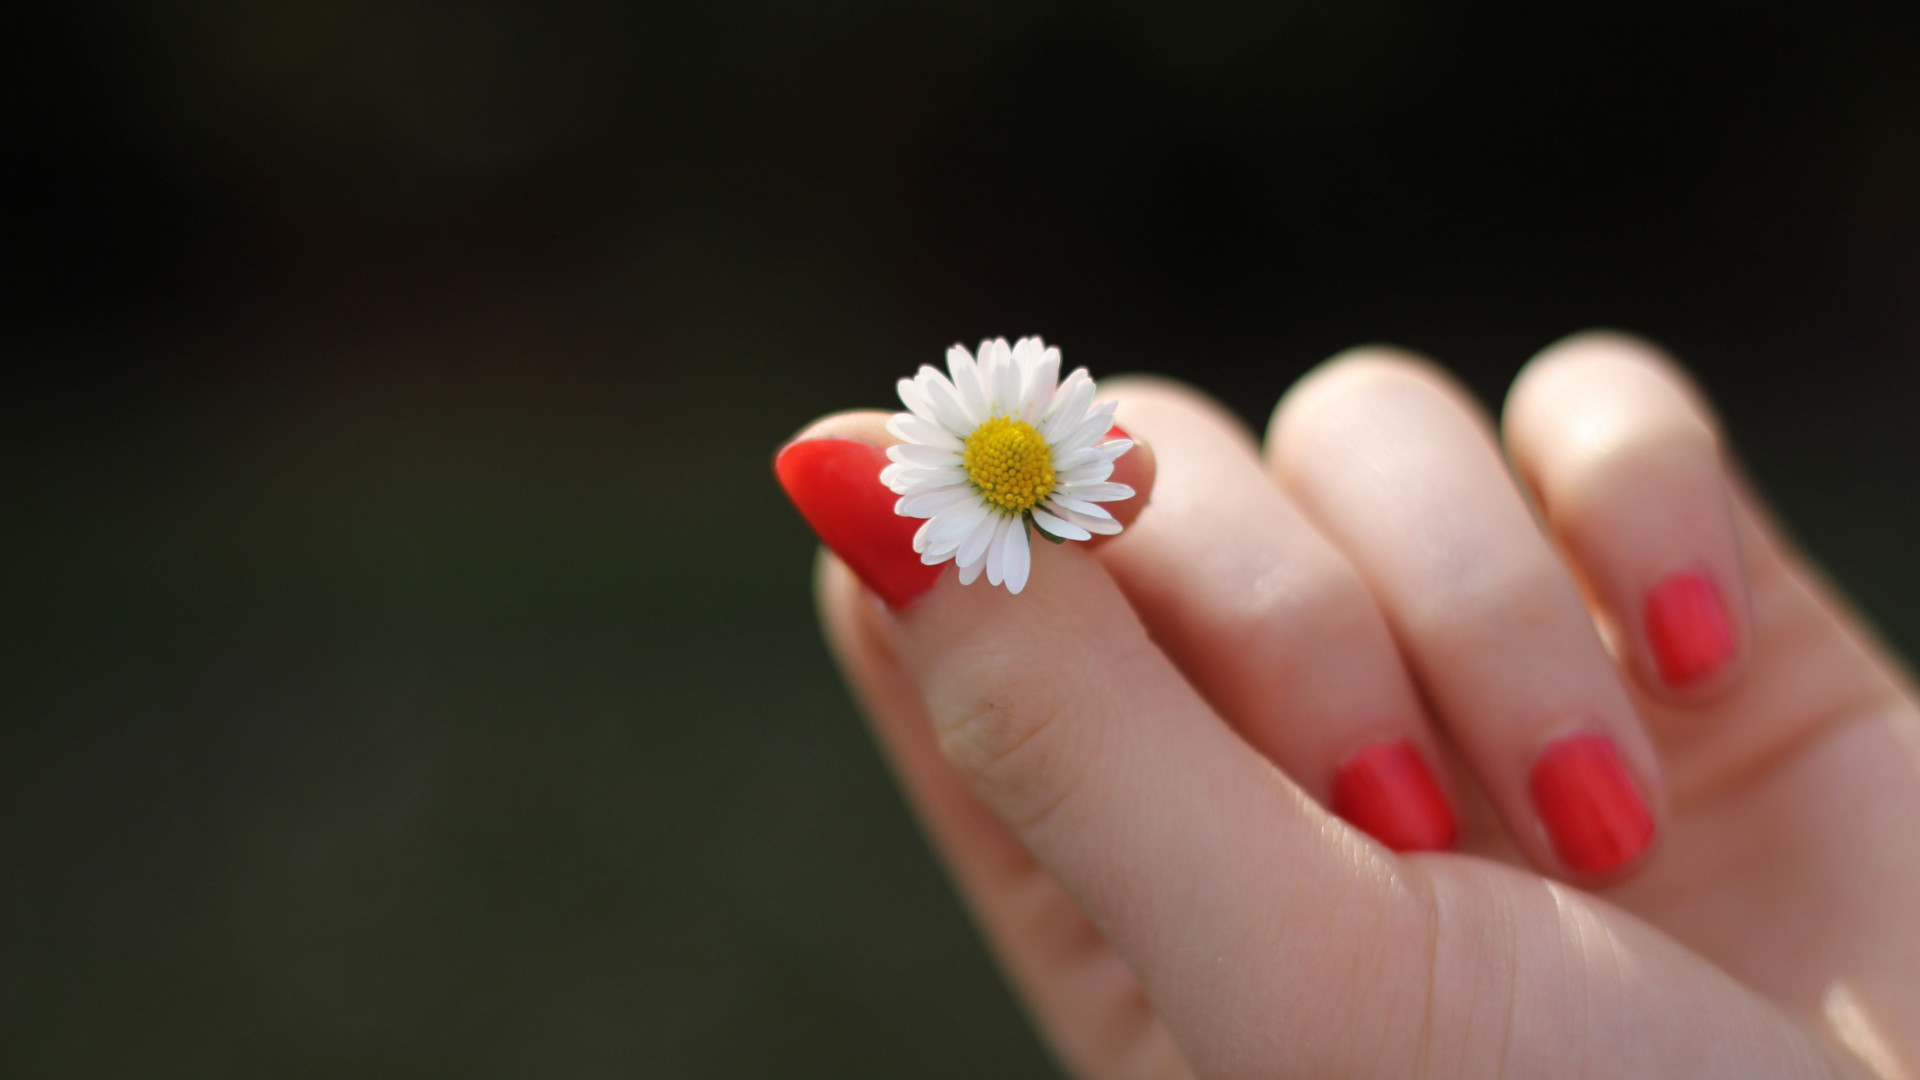 Girl with red nails and a daisy flower wallpaper 1920x1080